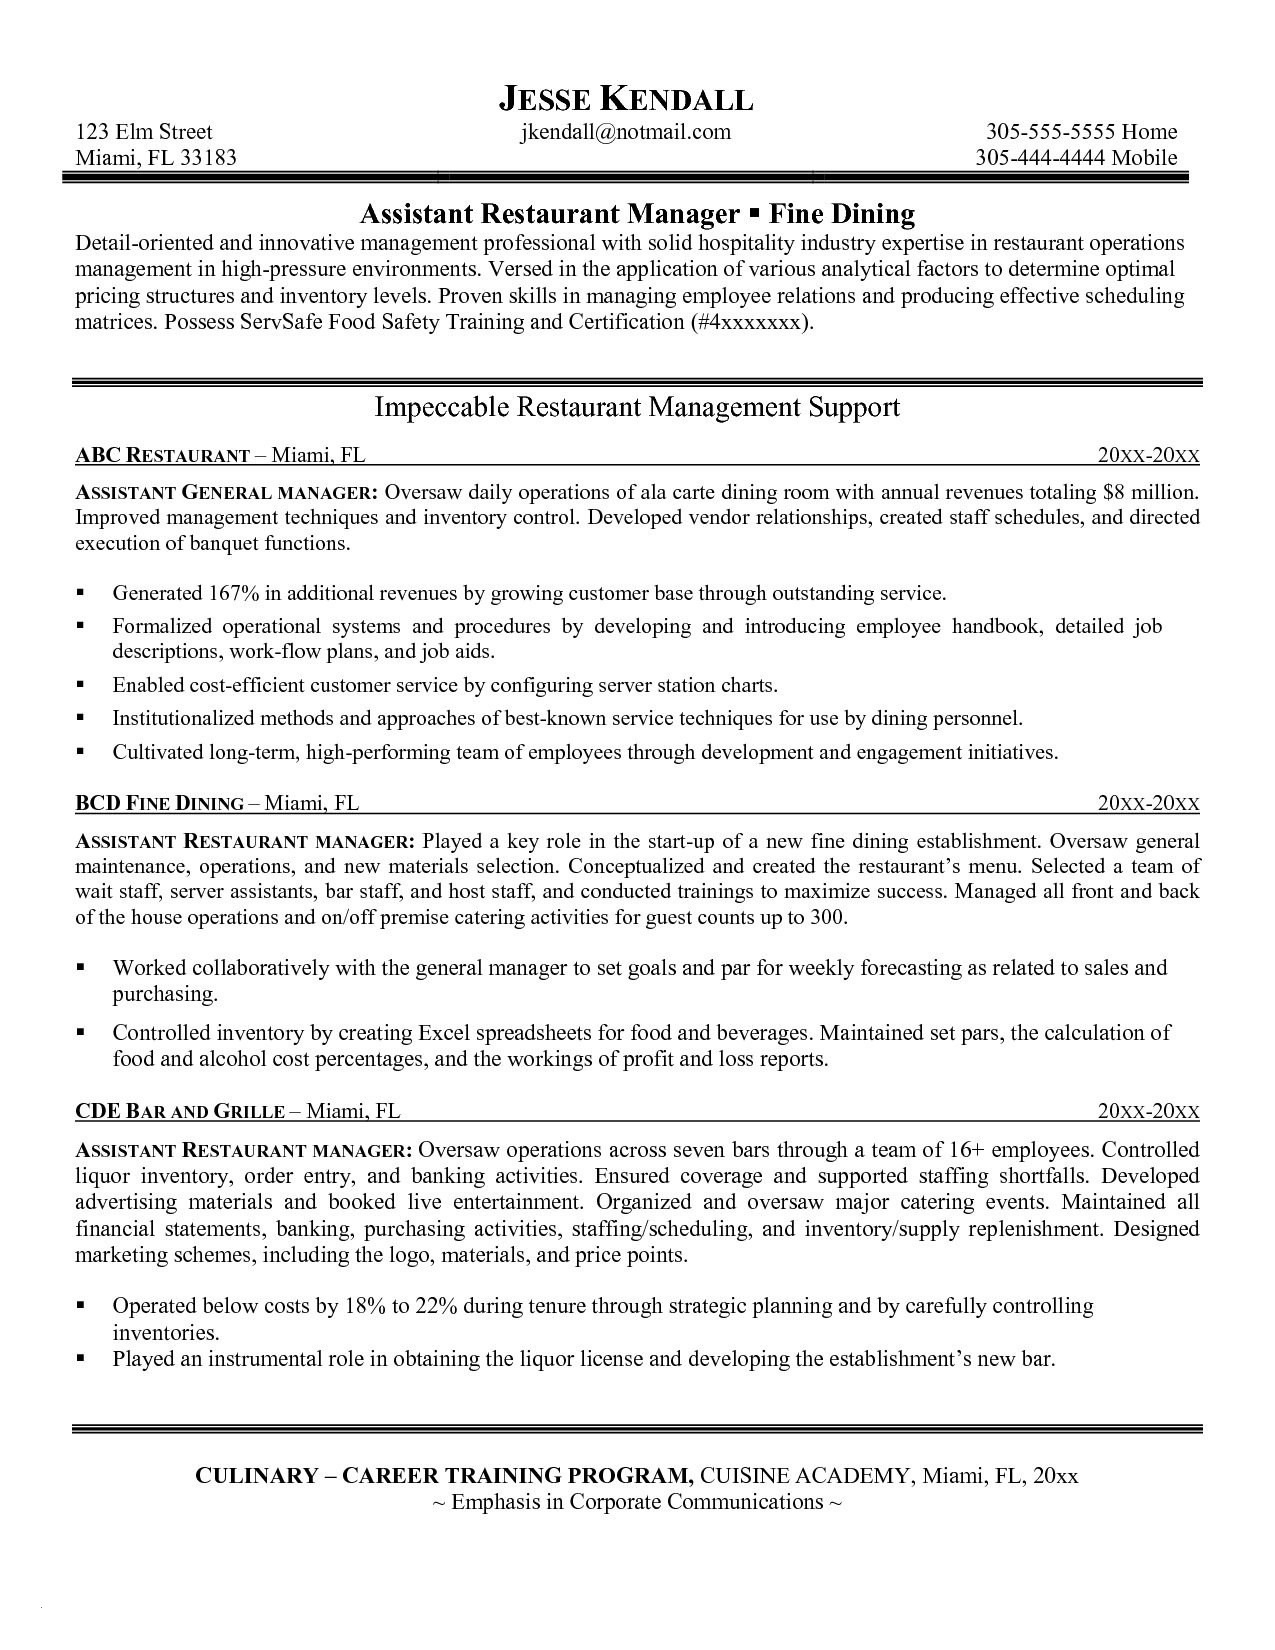 Restaurant General Manager Resume - Restaurant General Manager Resume Paragraphrewriter